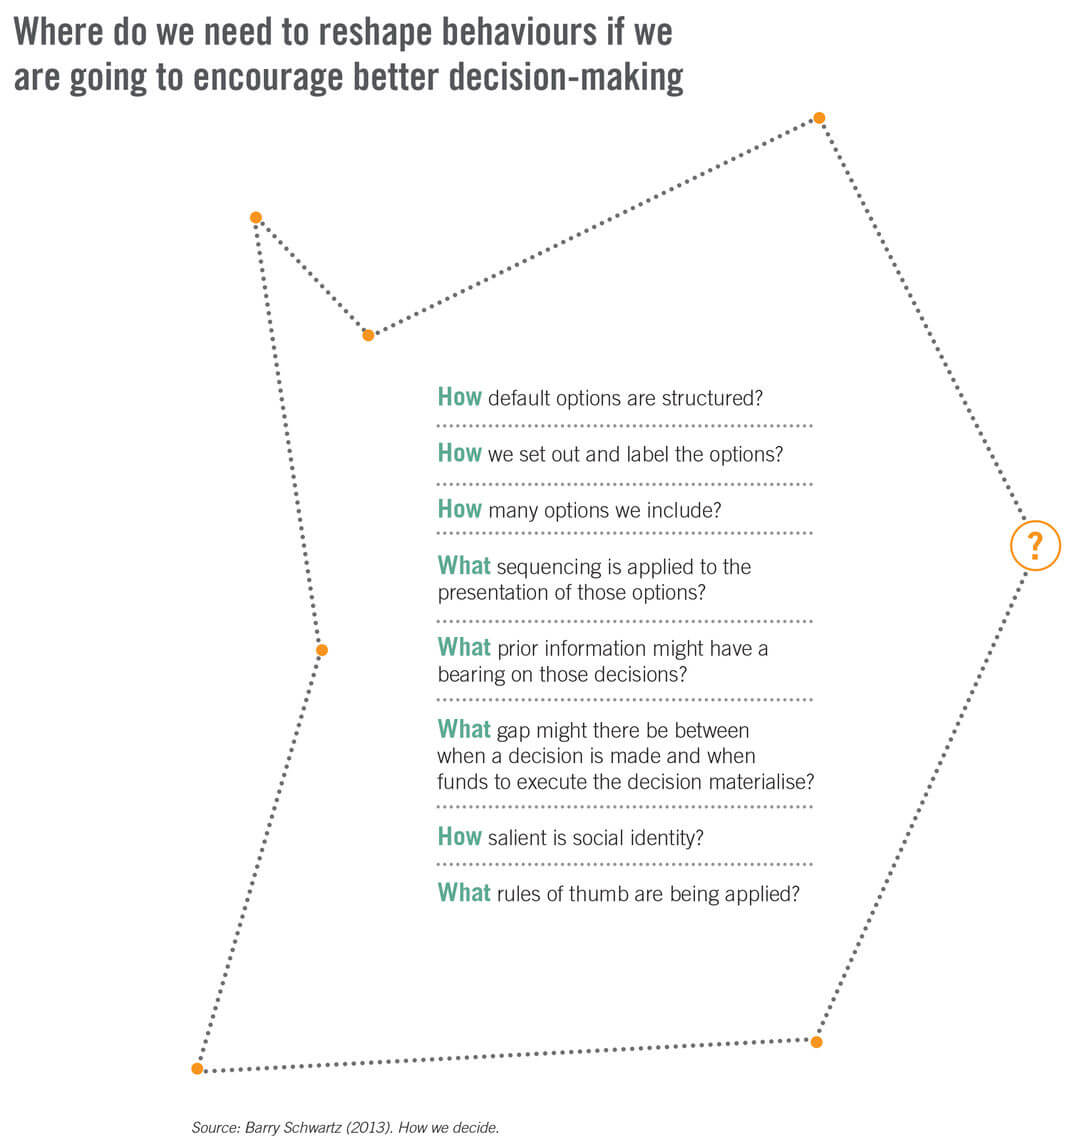 where do we need to reshape behaviours if we are going to encourage better decision making